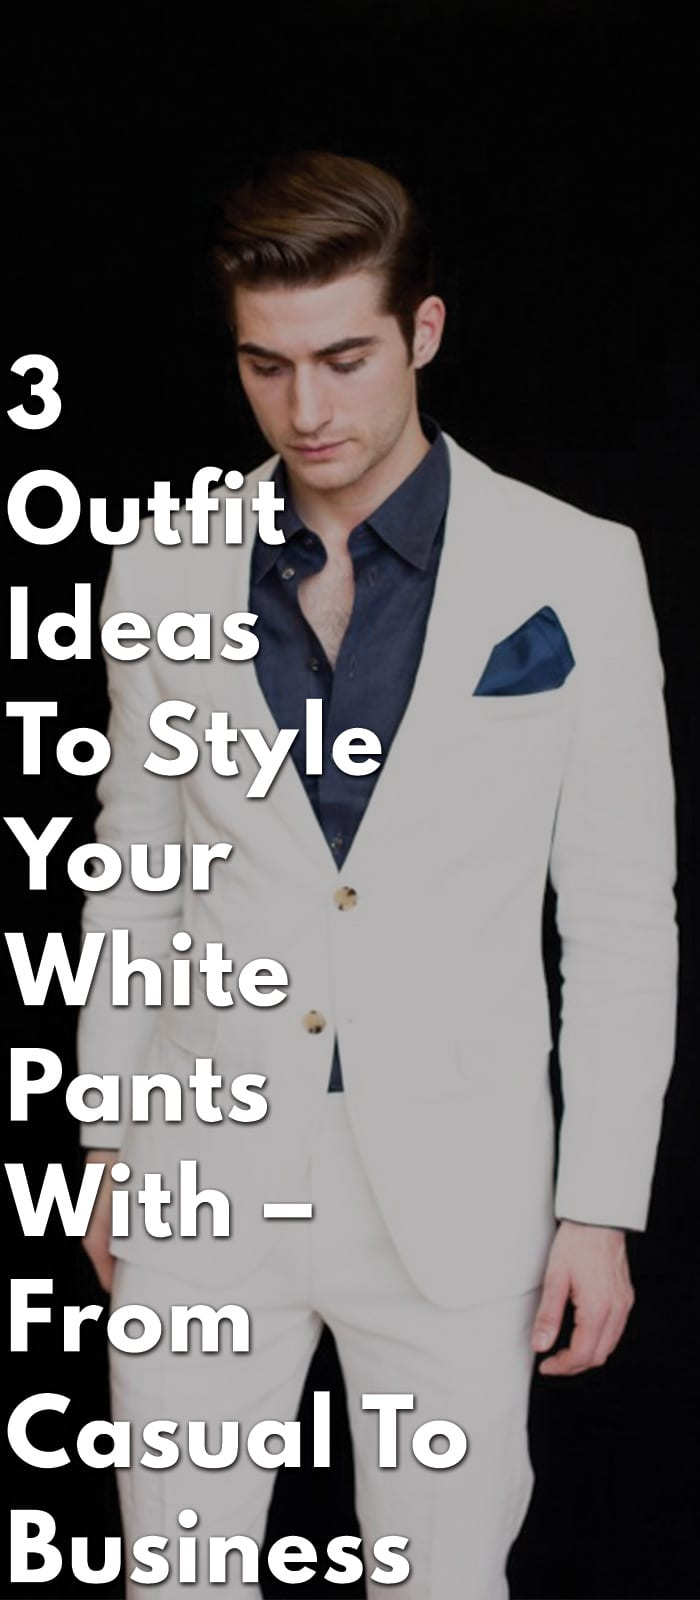 3-Outfit-Ideas-To-Style-Your-White-Pants-With-–-From-Casual-To-Business